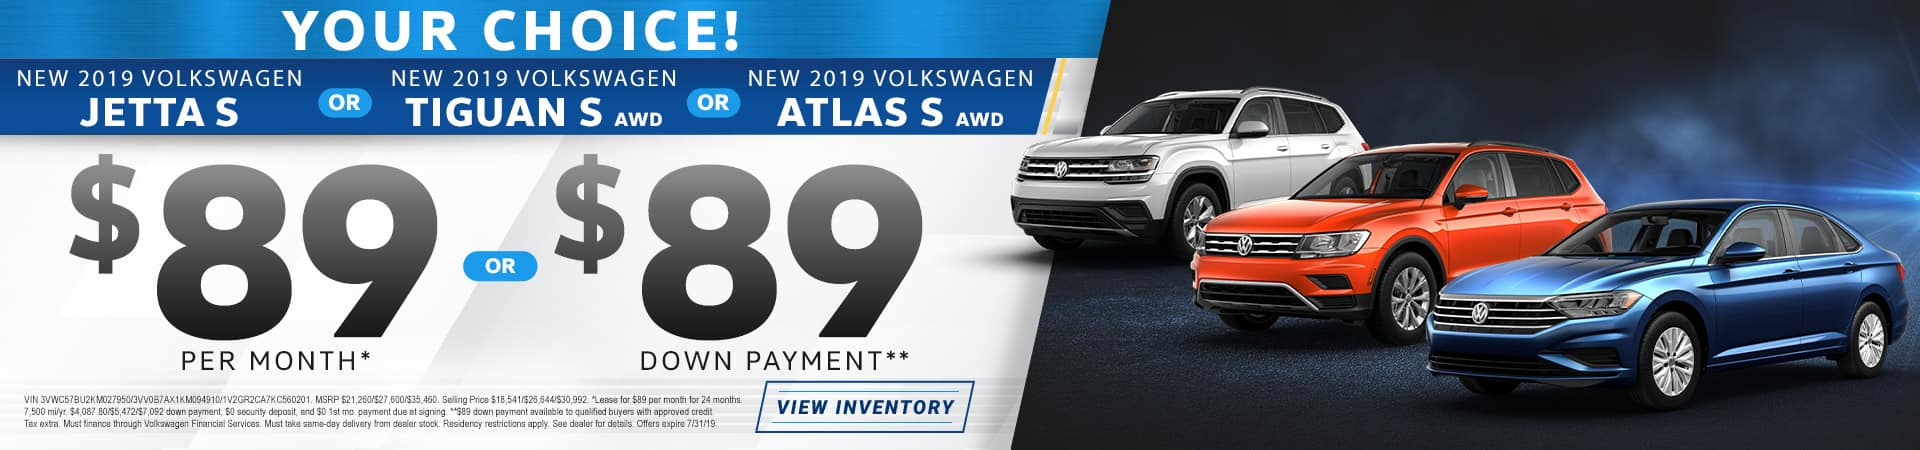 Your choice. Jetta S TIguan S Atlas S